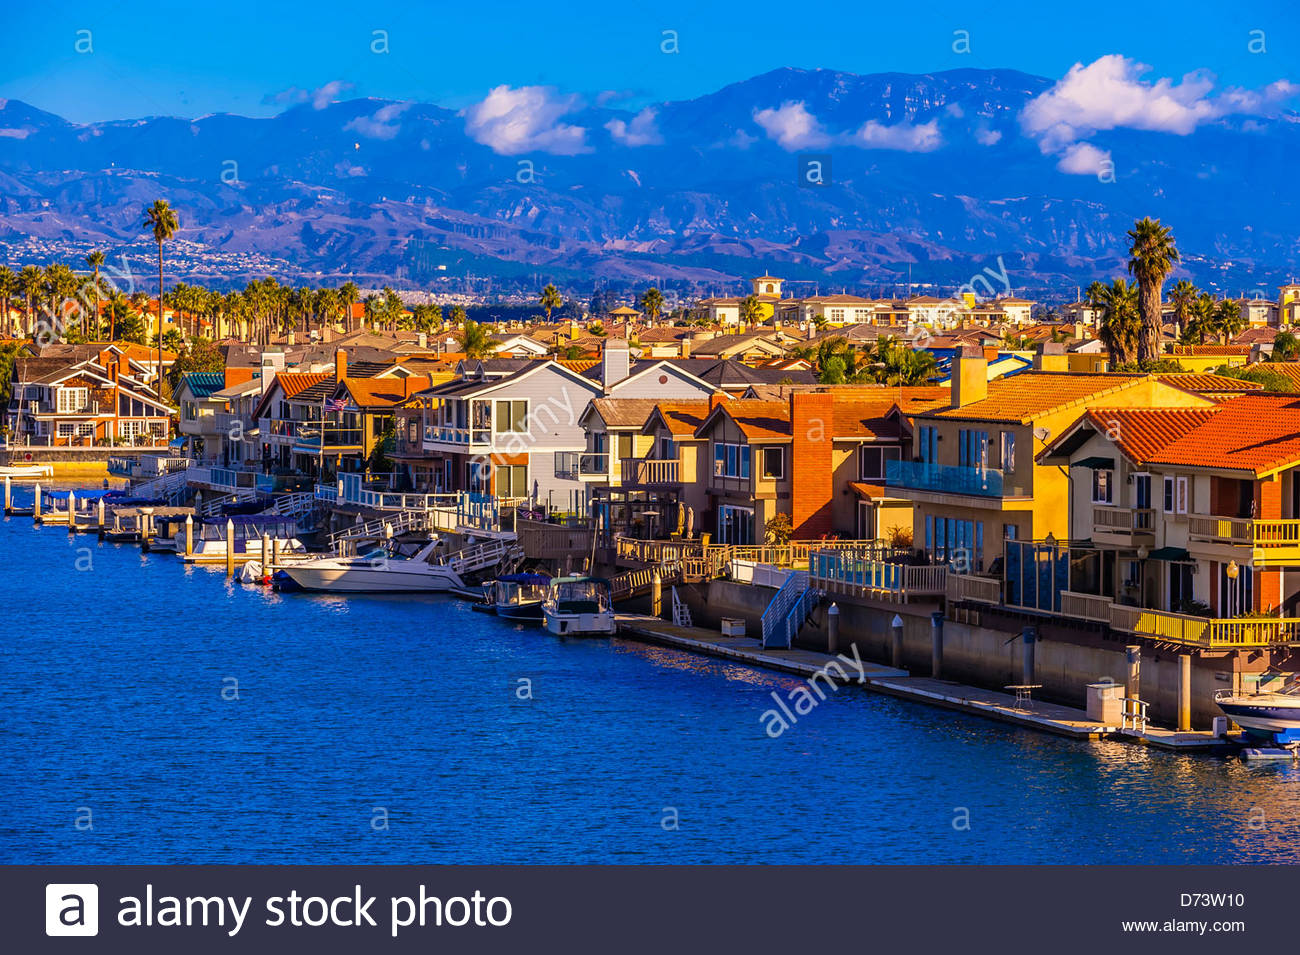 channel islands harbor, oxnard, california usa stock photo: 56019180